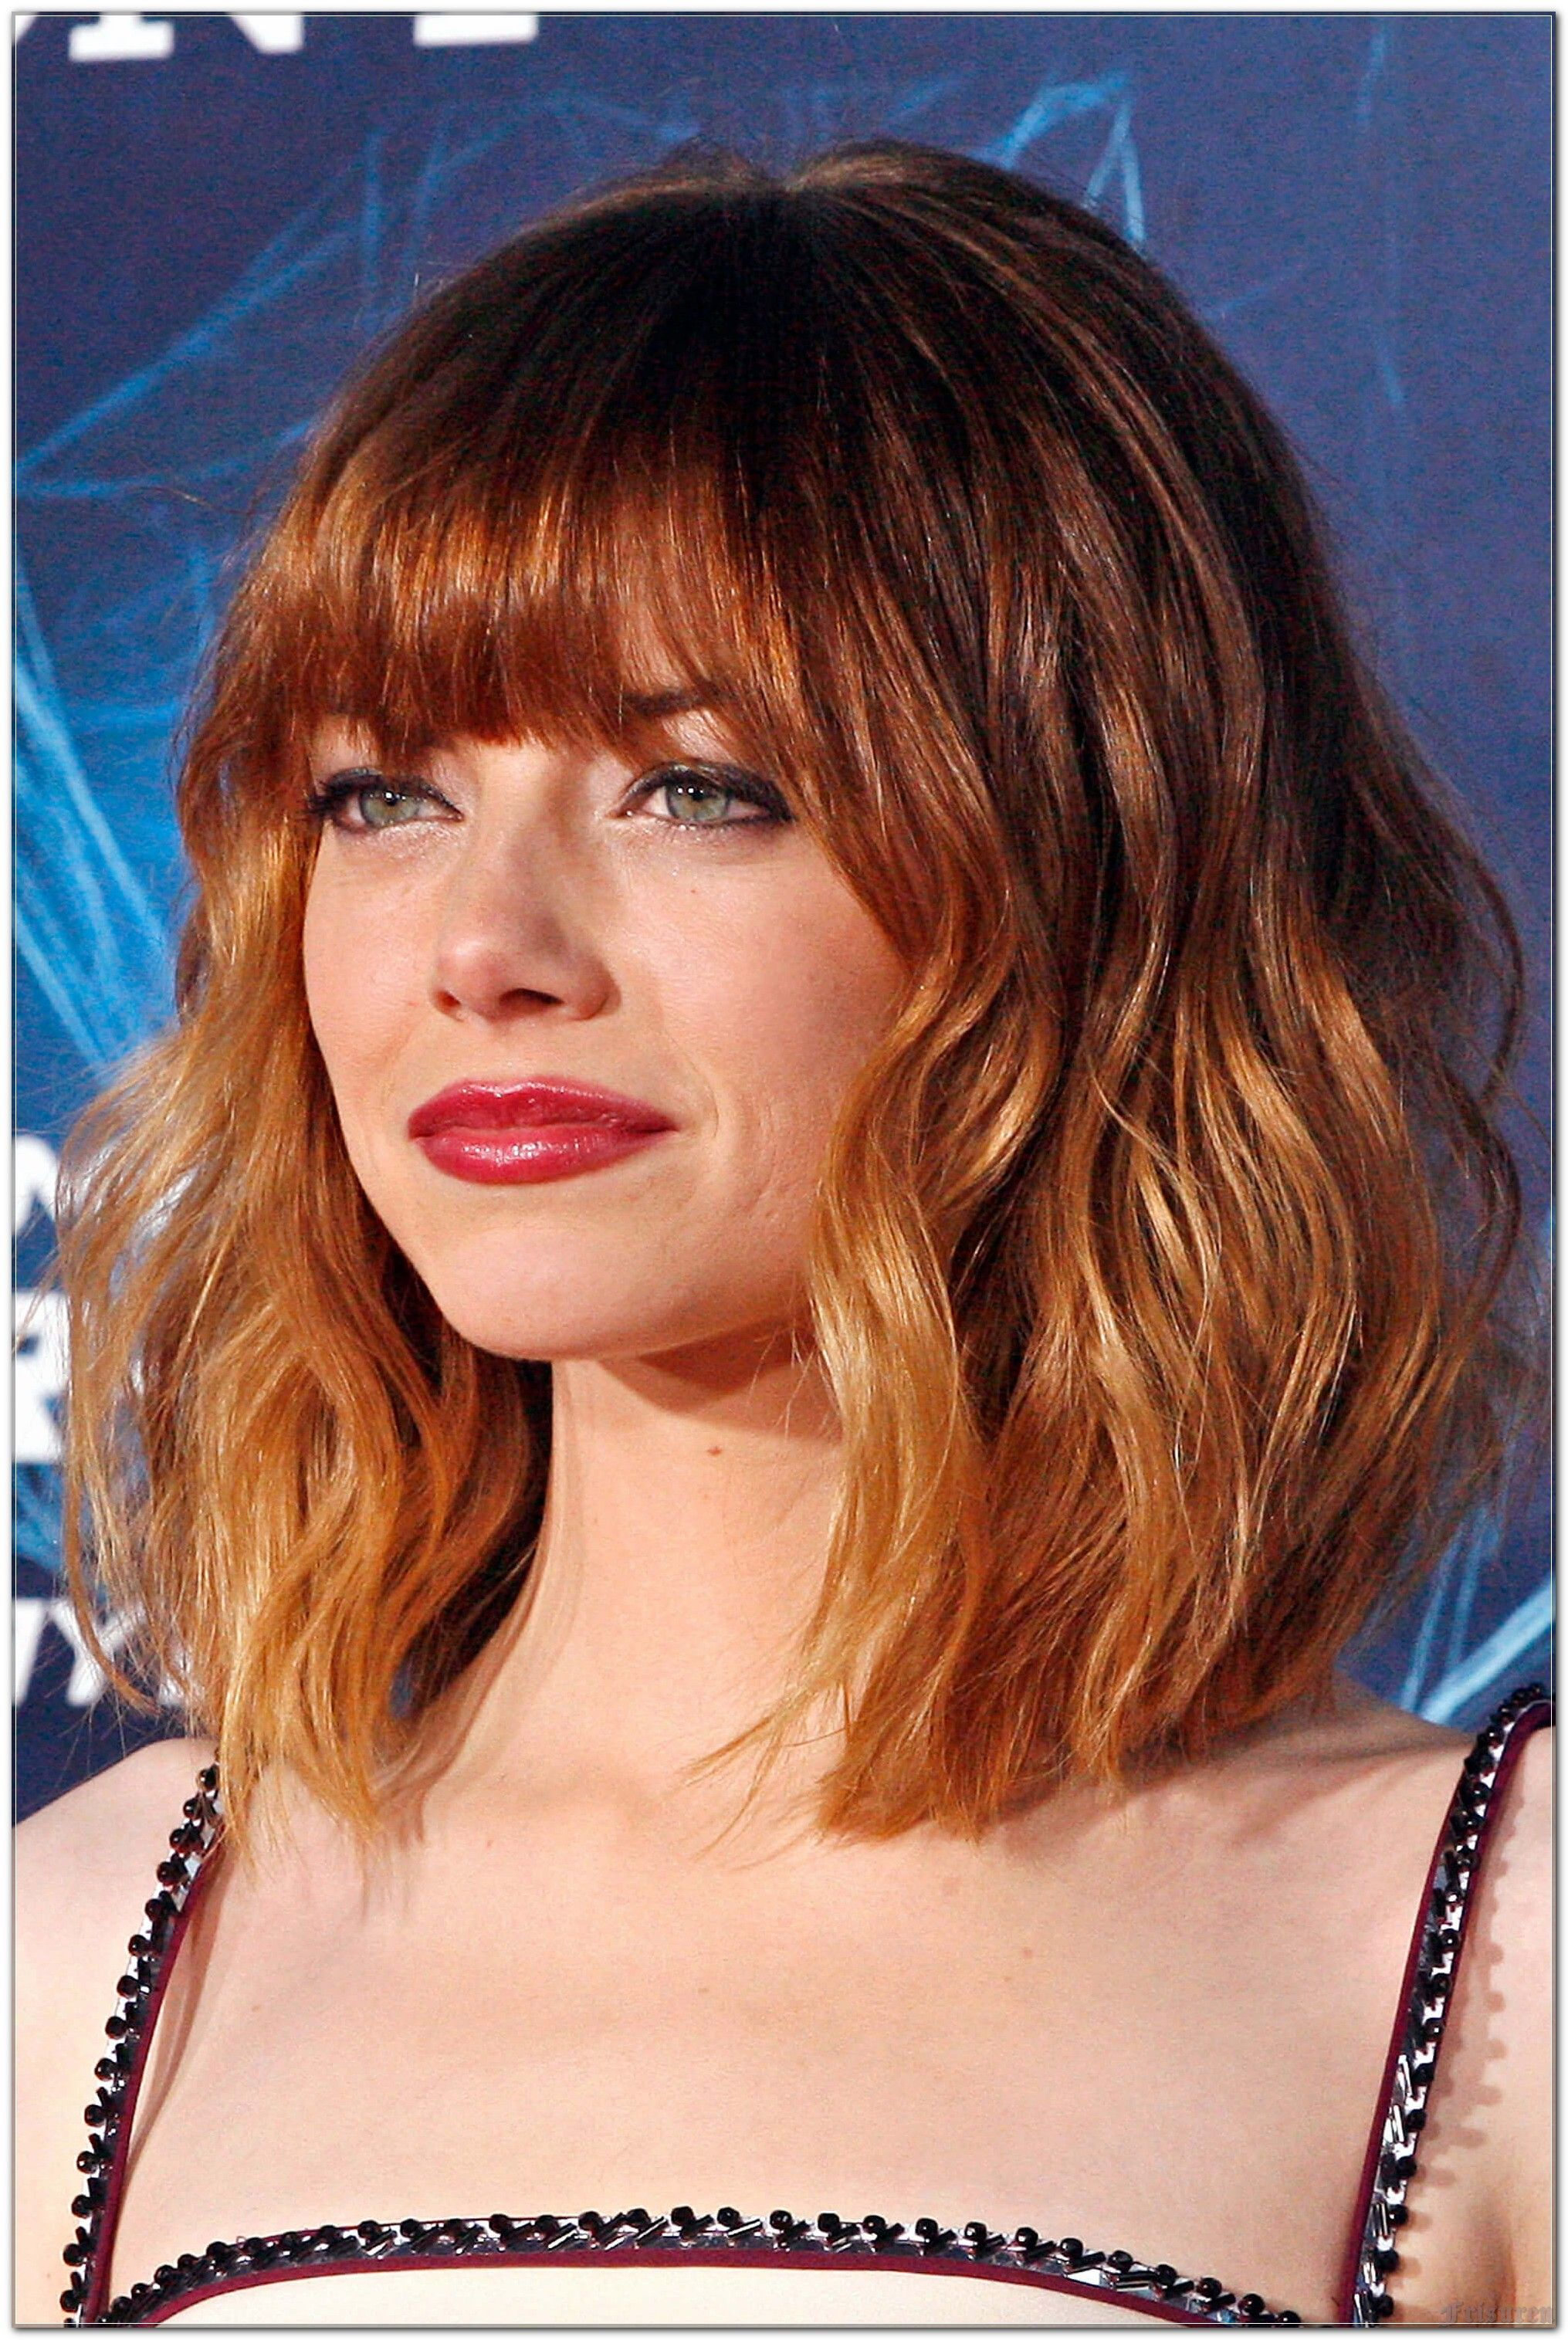 Revolutionize Your Frisuren With These Easy-peasy Tips for 2021